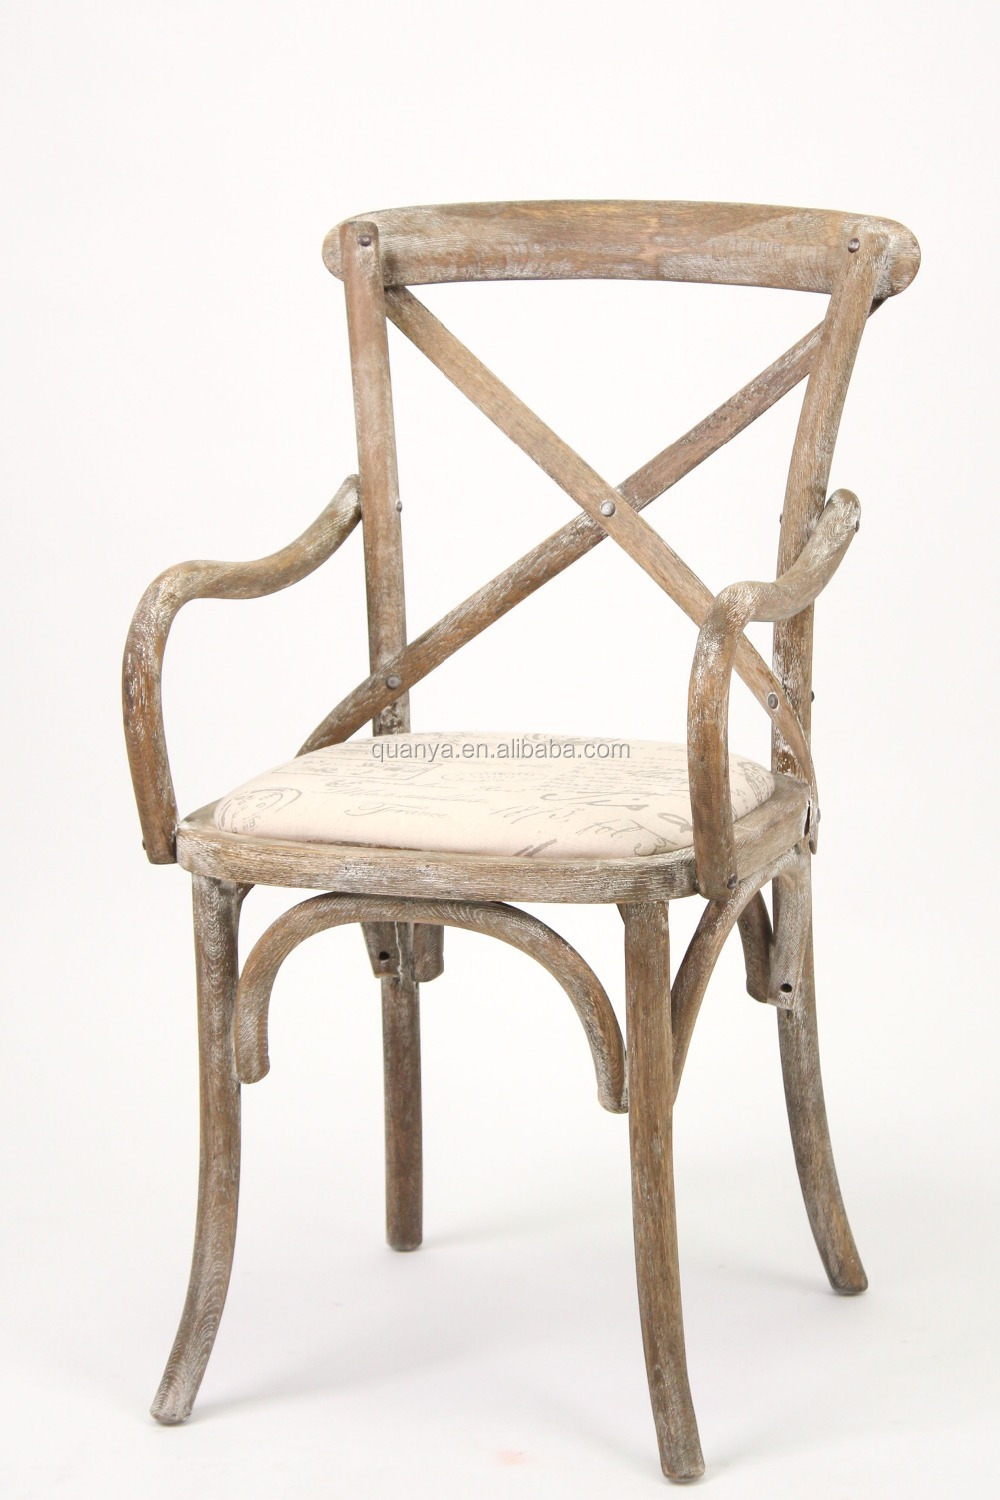 Wooden chairs with armrest - Wooden Armrest Chair Wooden Armrest Chair Suppliers And Manufacturers At Alibaba Com